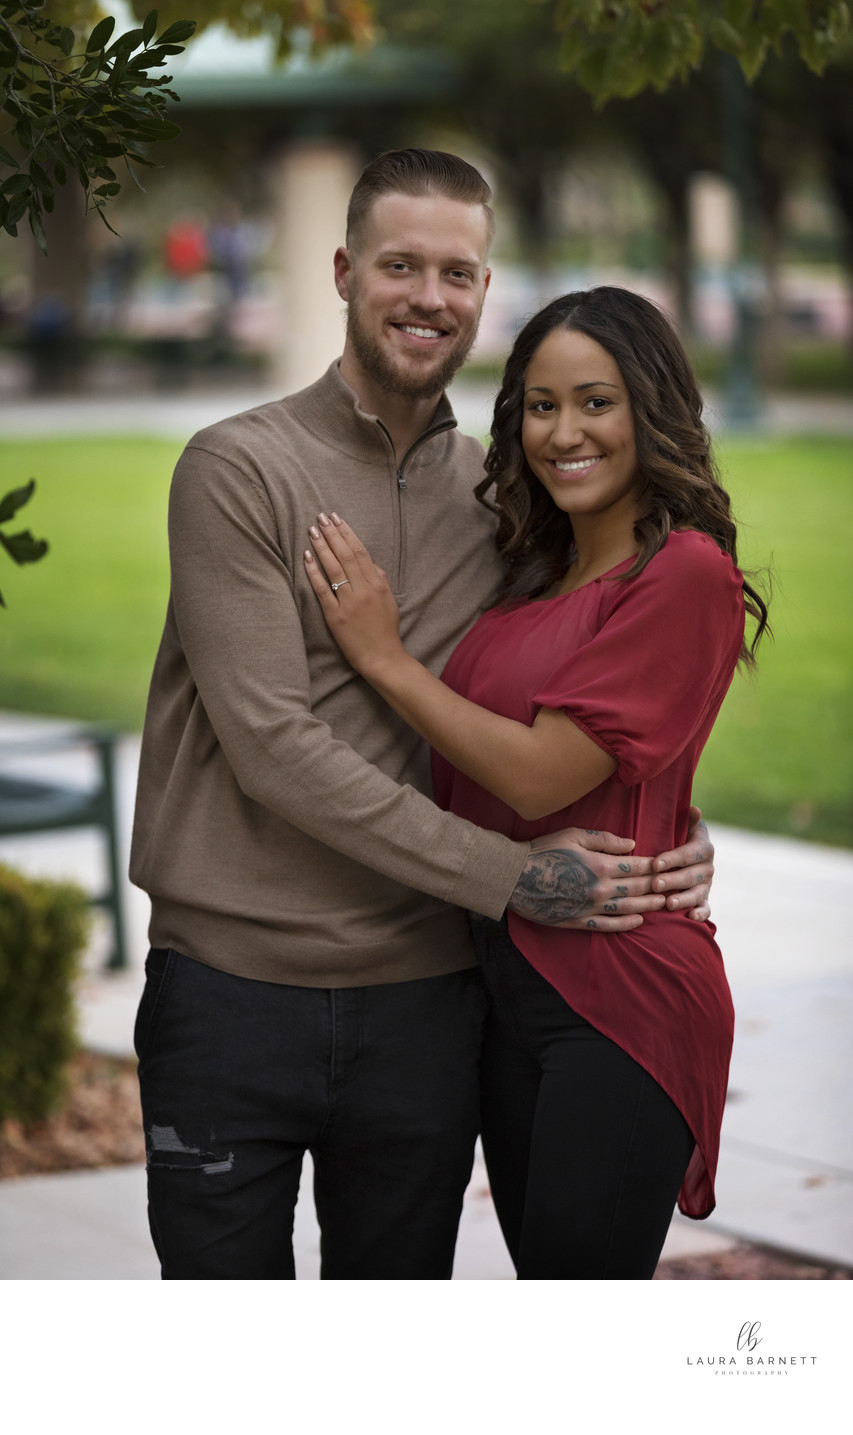 Las Vegas Engagement Photographer-couple at park